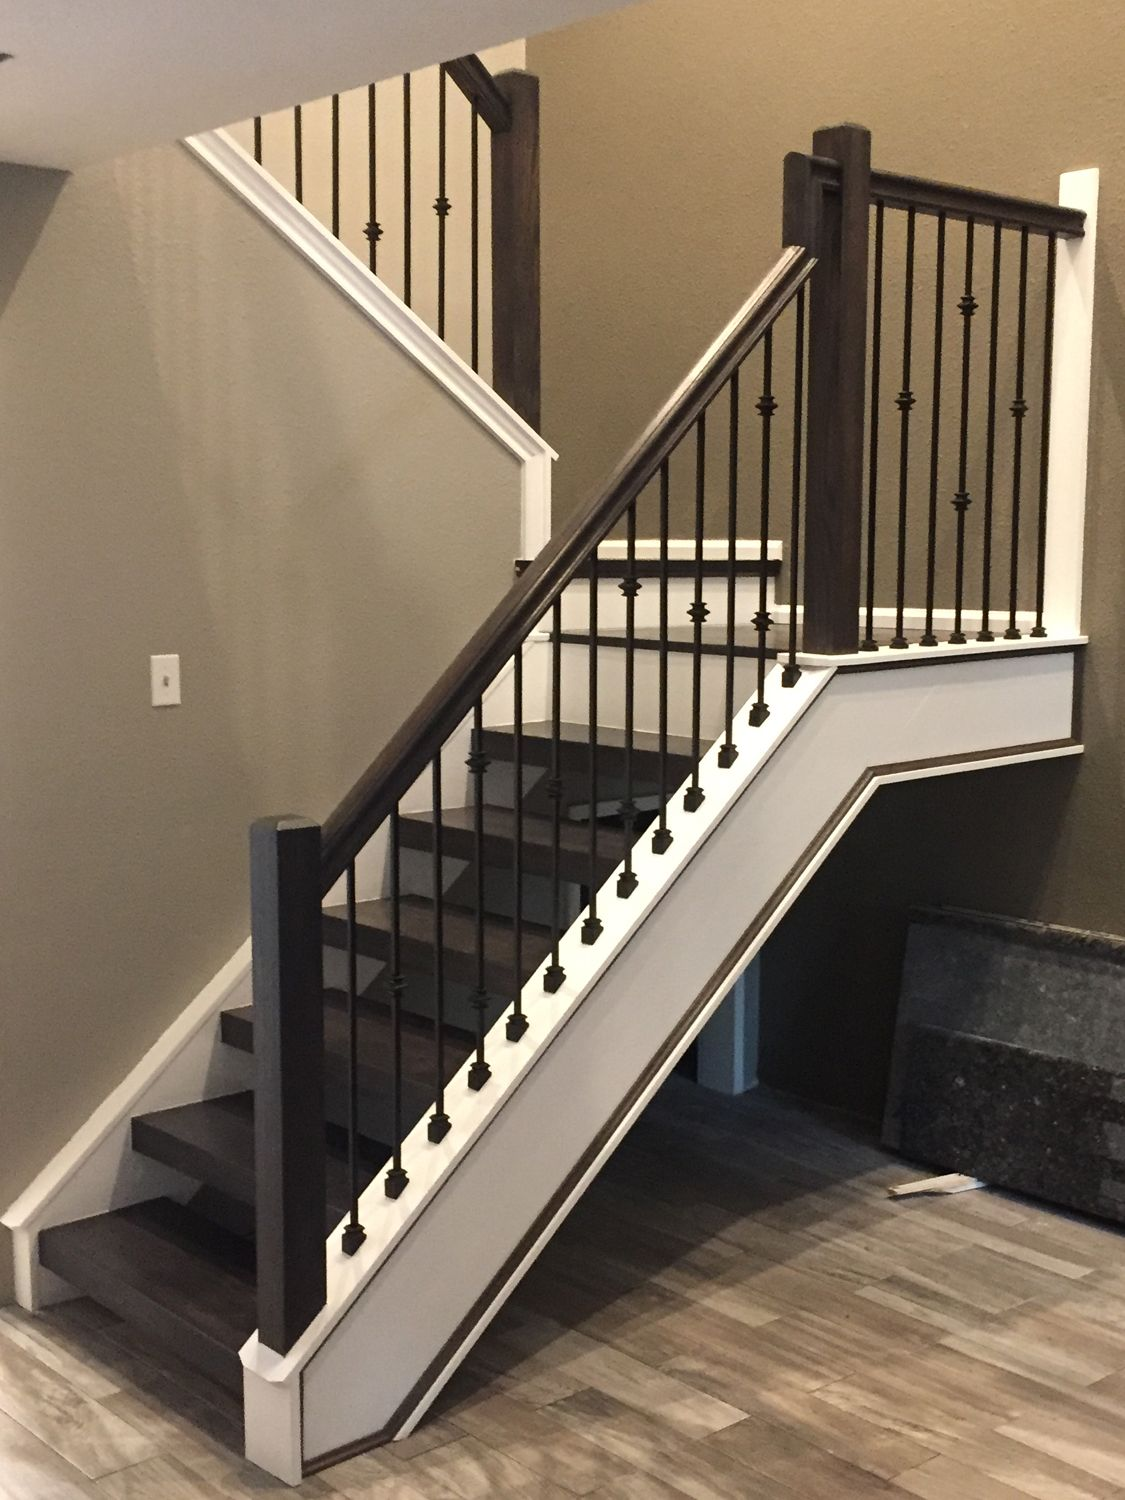 Find This Pin And More On Classic Stairs, Balusters, And Newels By  Venetianstairs.